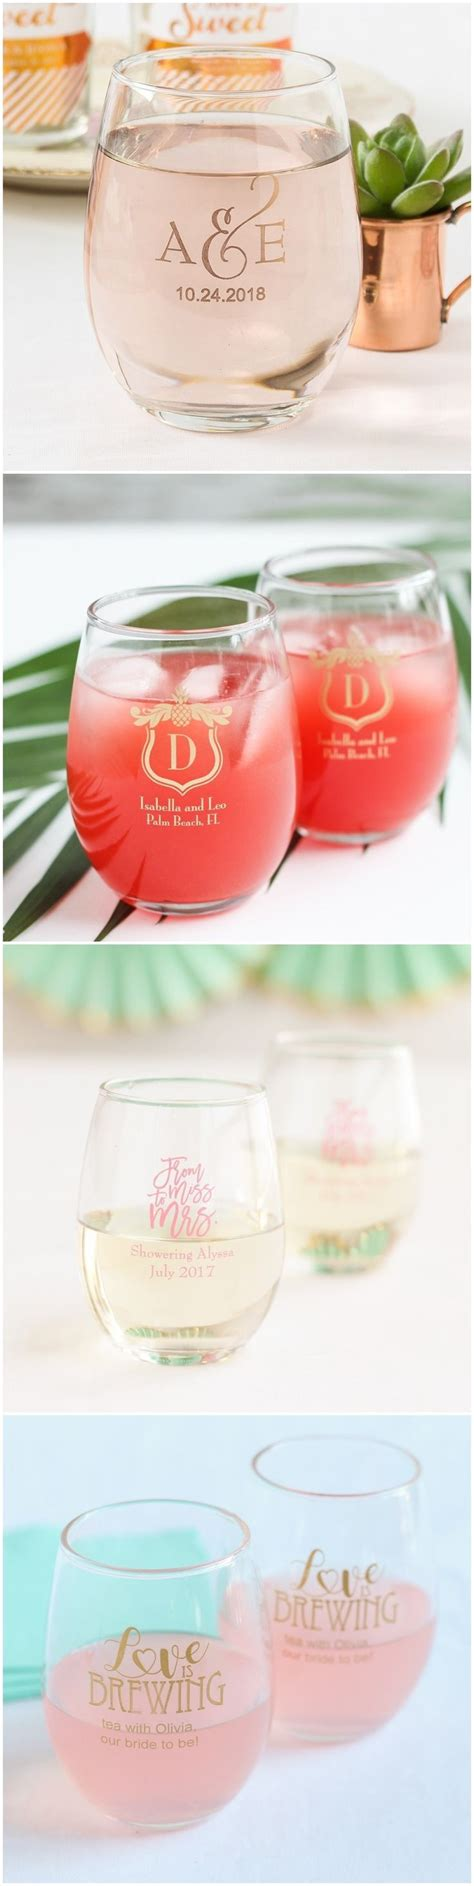 wedding favor ideas cheap 453 best anniversary gift ideas images on